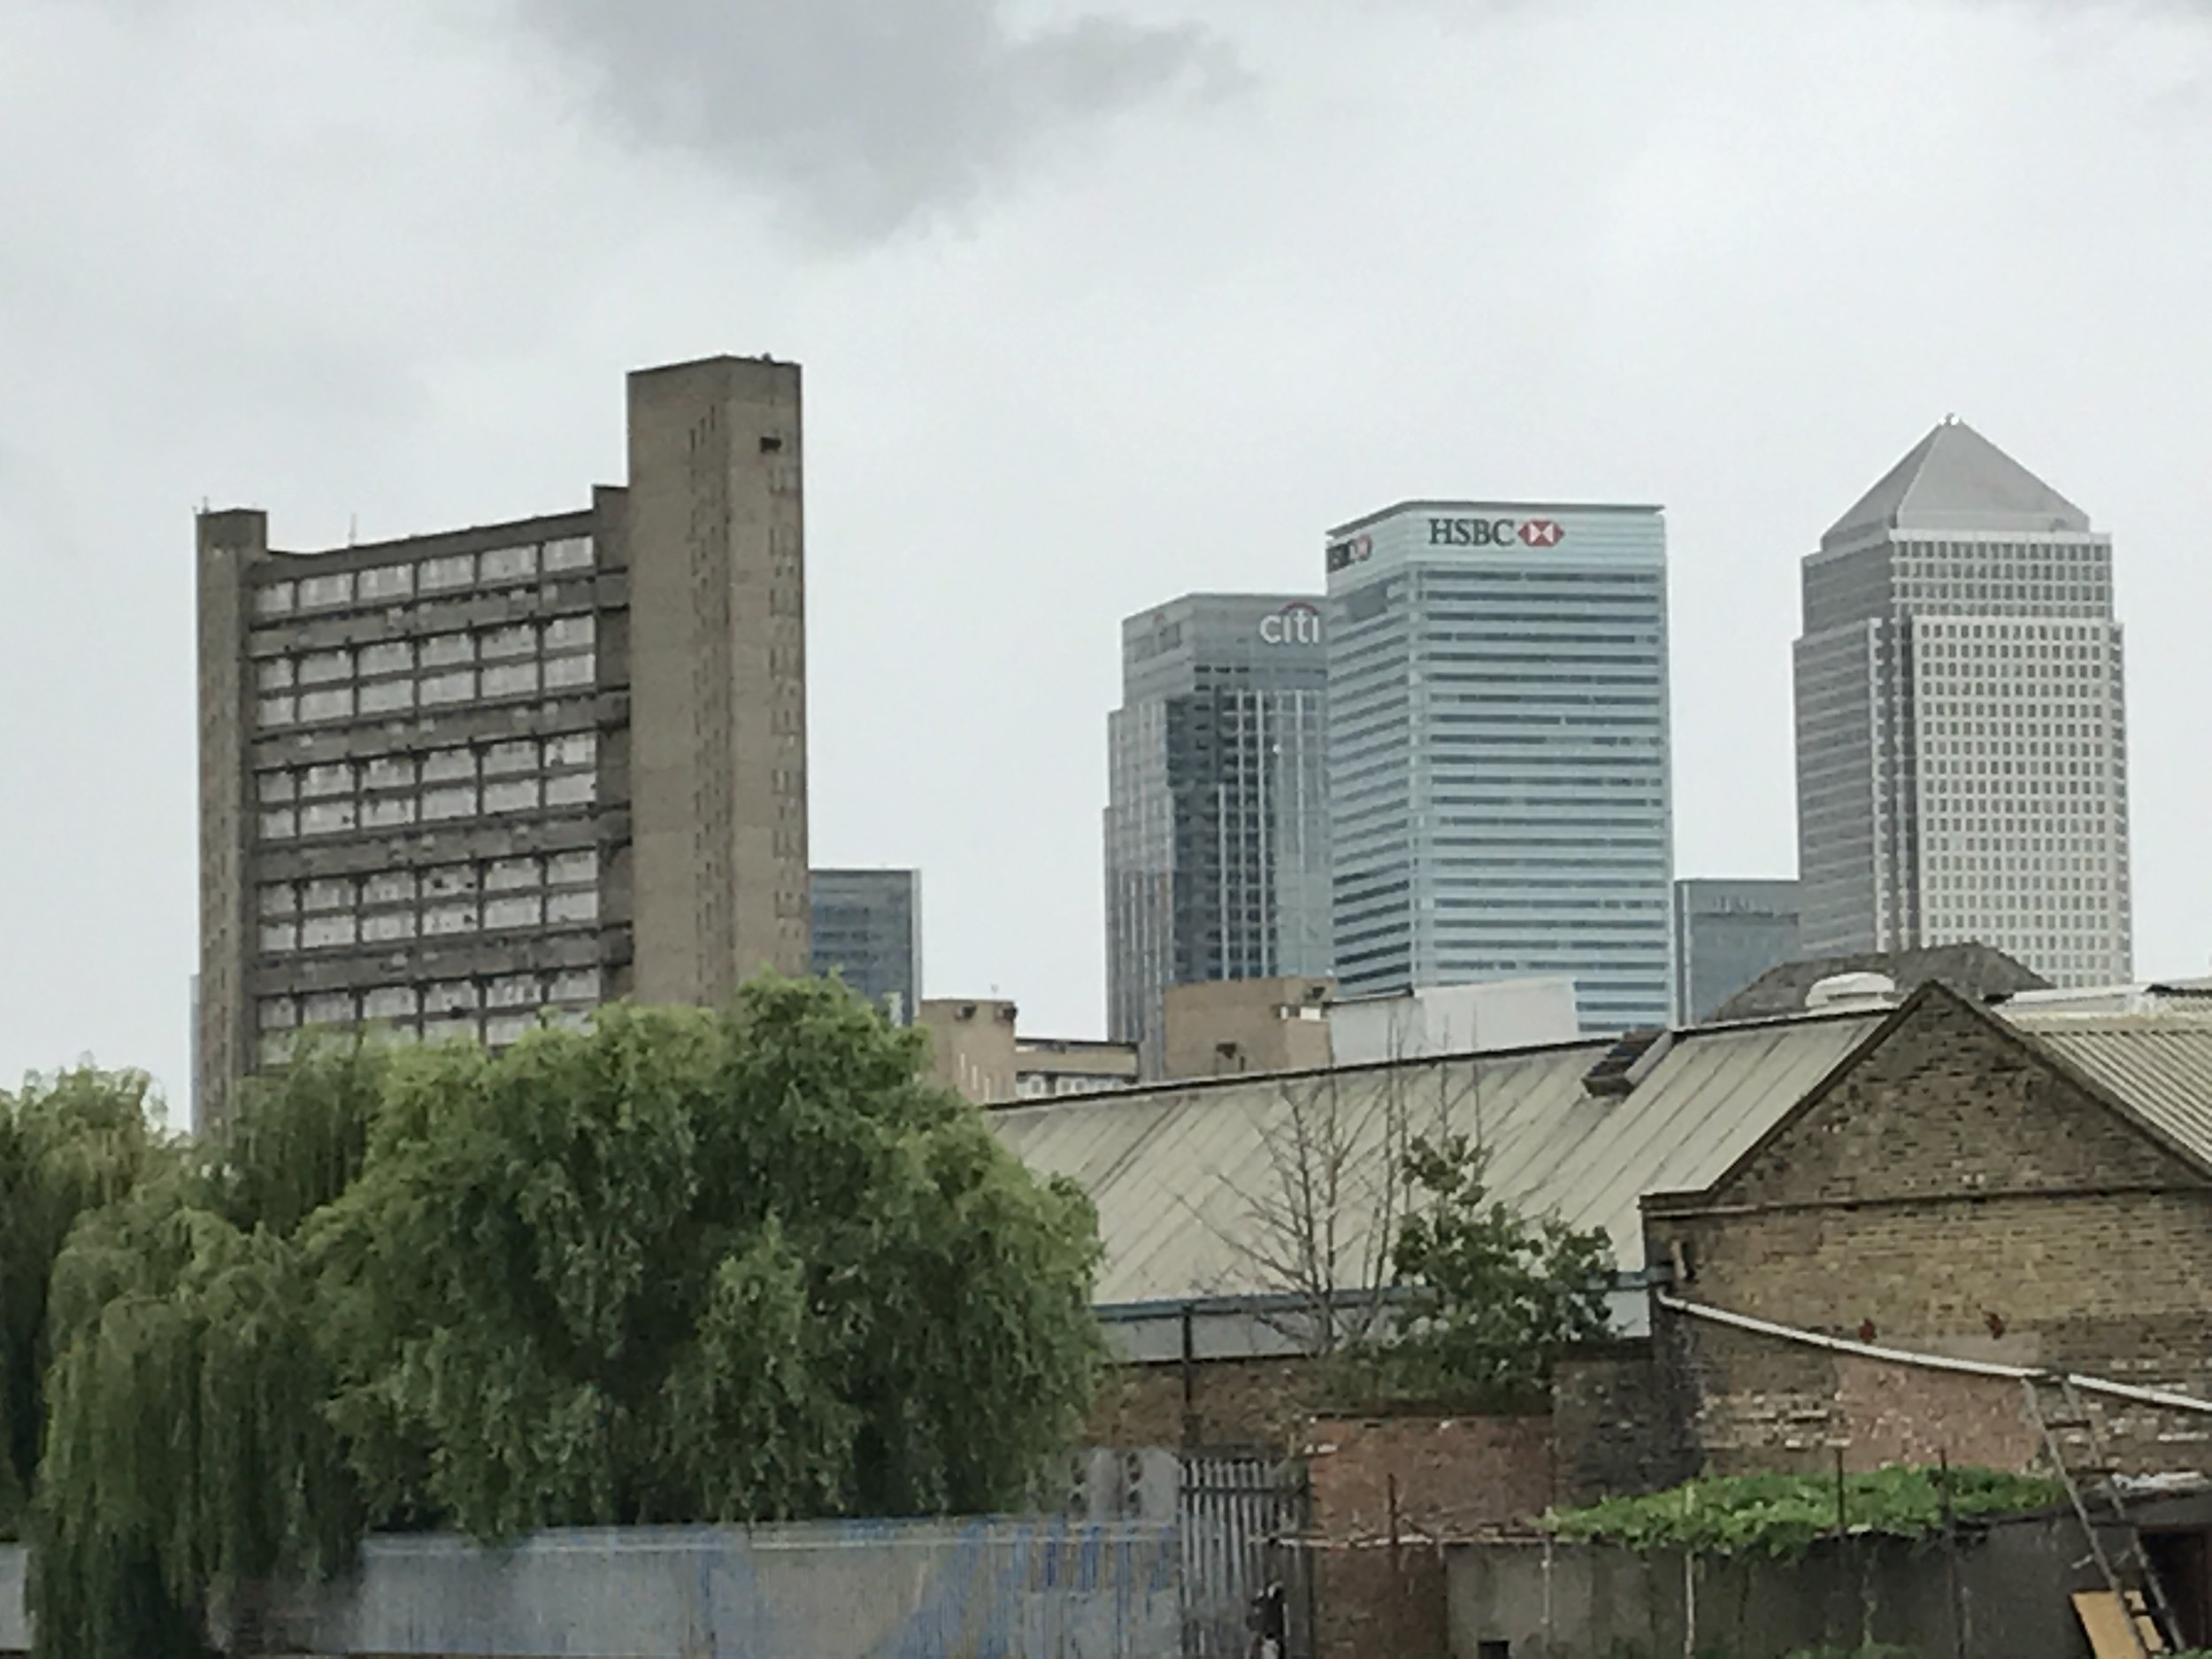 Balfron Tower and the City from the west bank of the River Lea